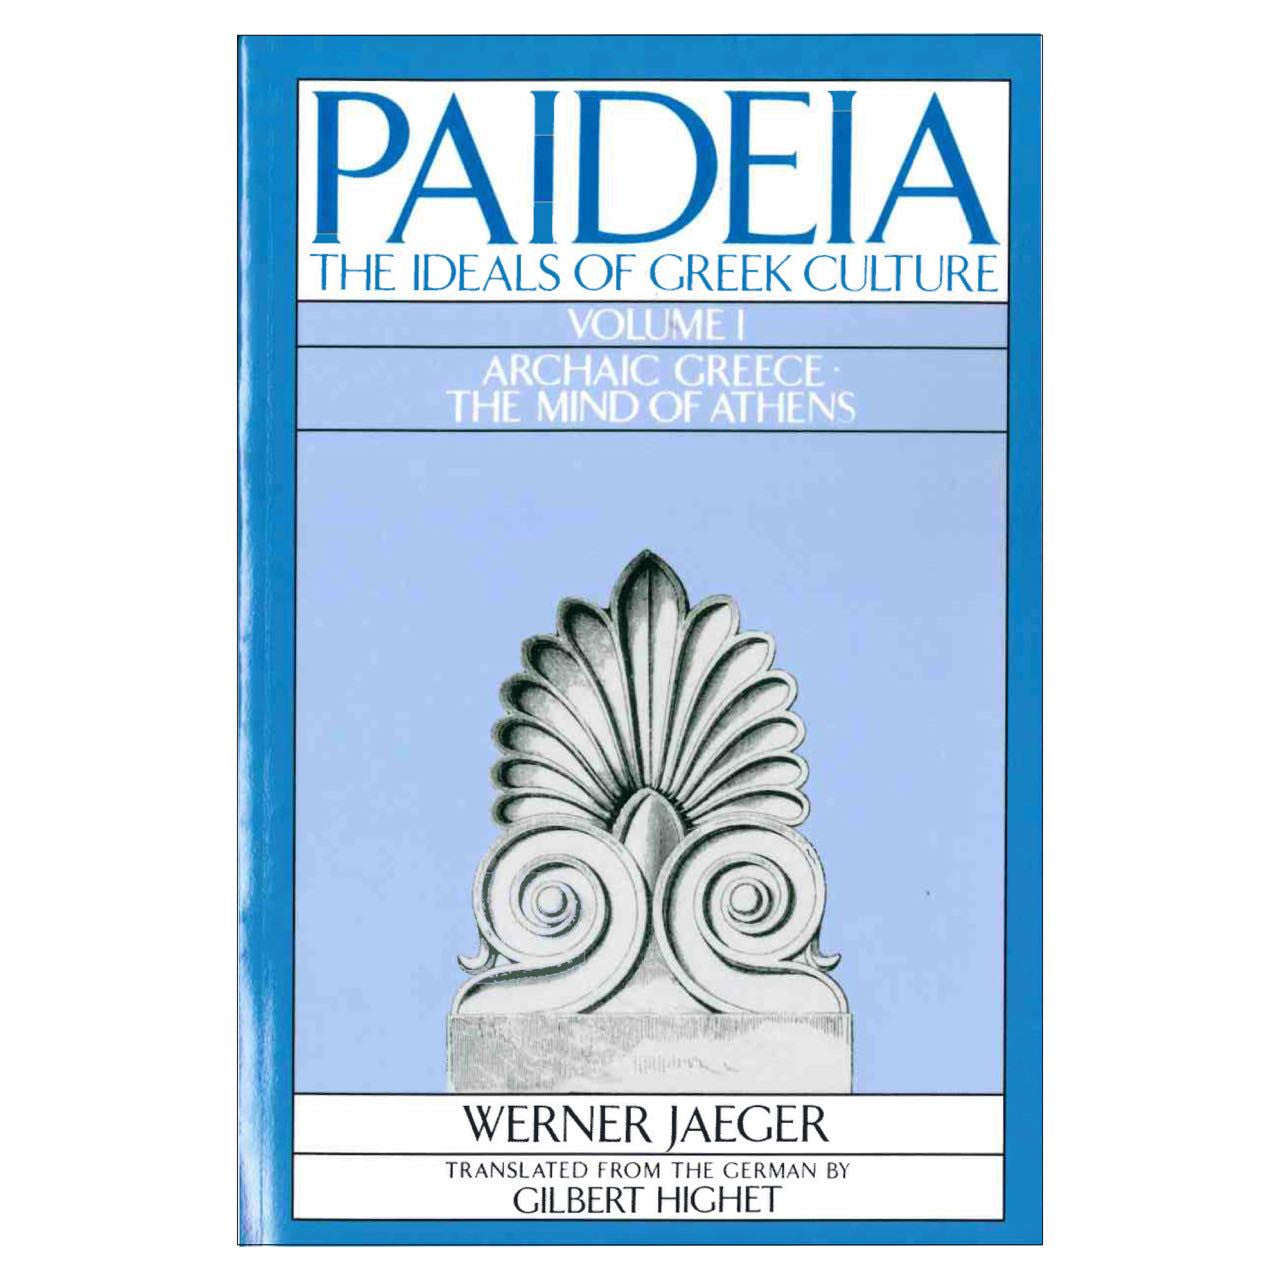 Paideia: The Ideals of Greek Culture: Volume I: Archaic Greece: The Mind of Athens